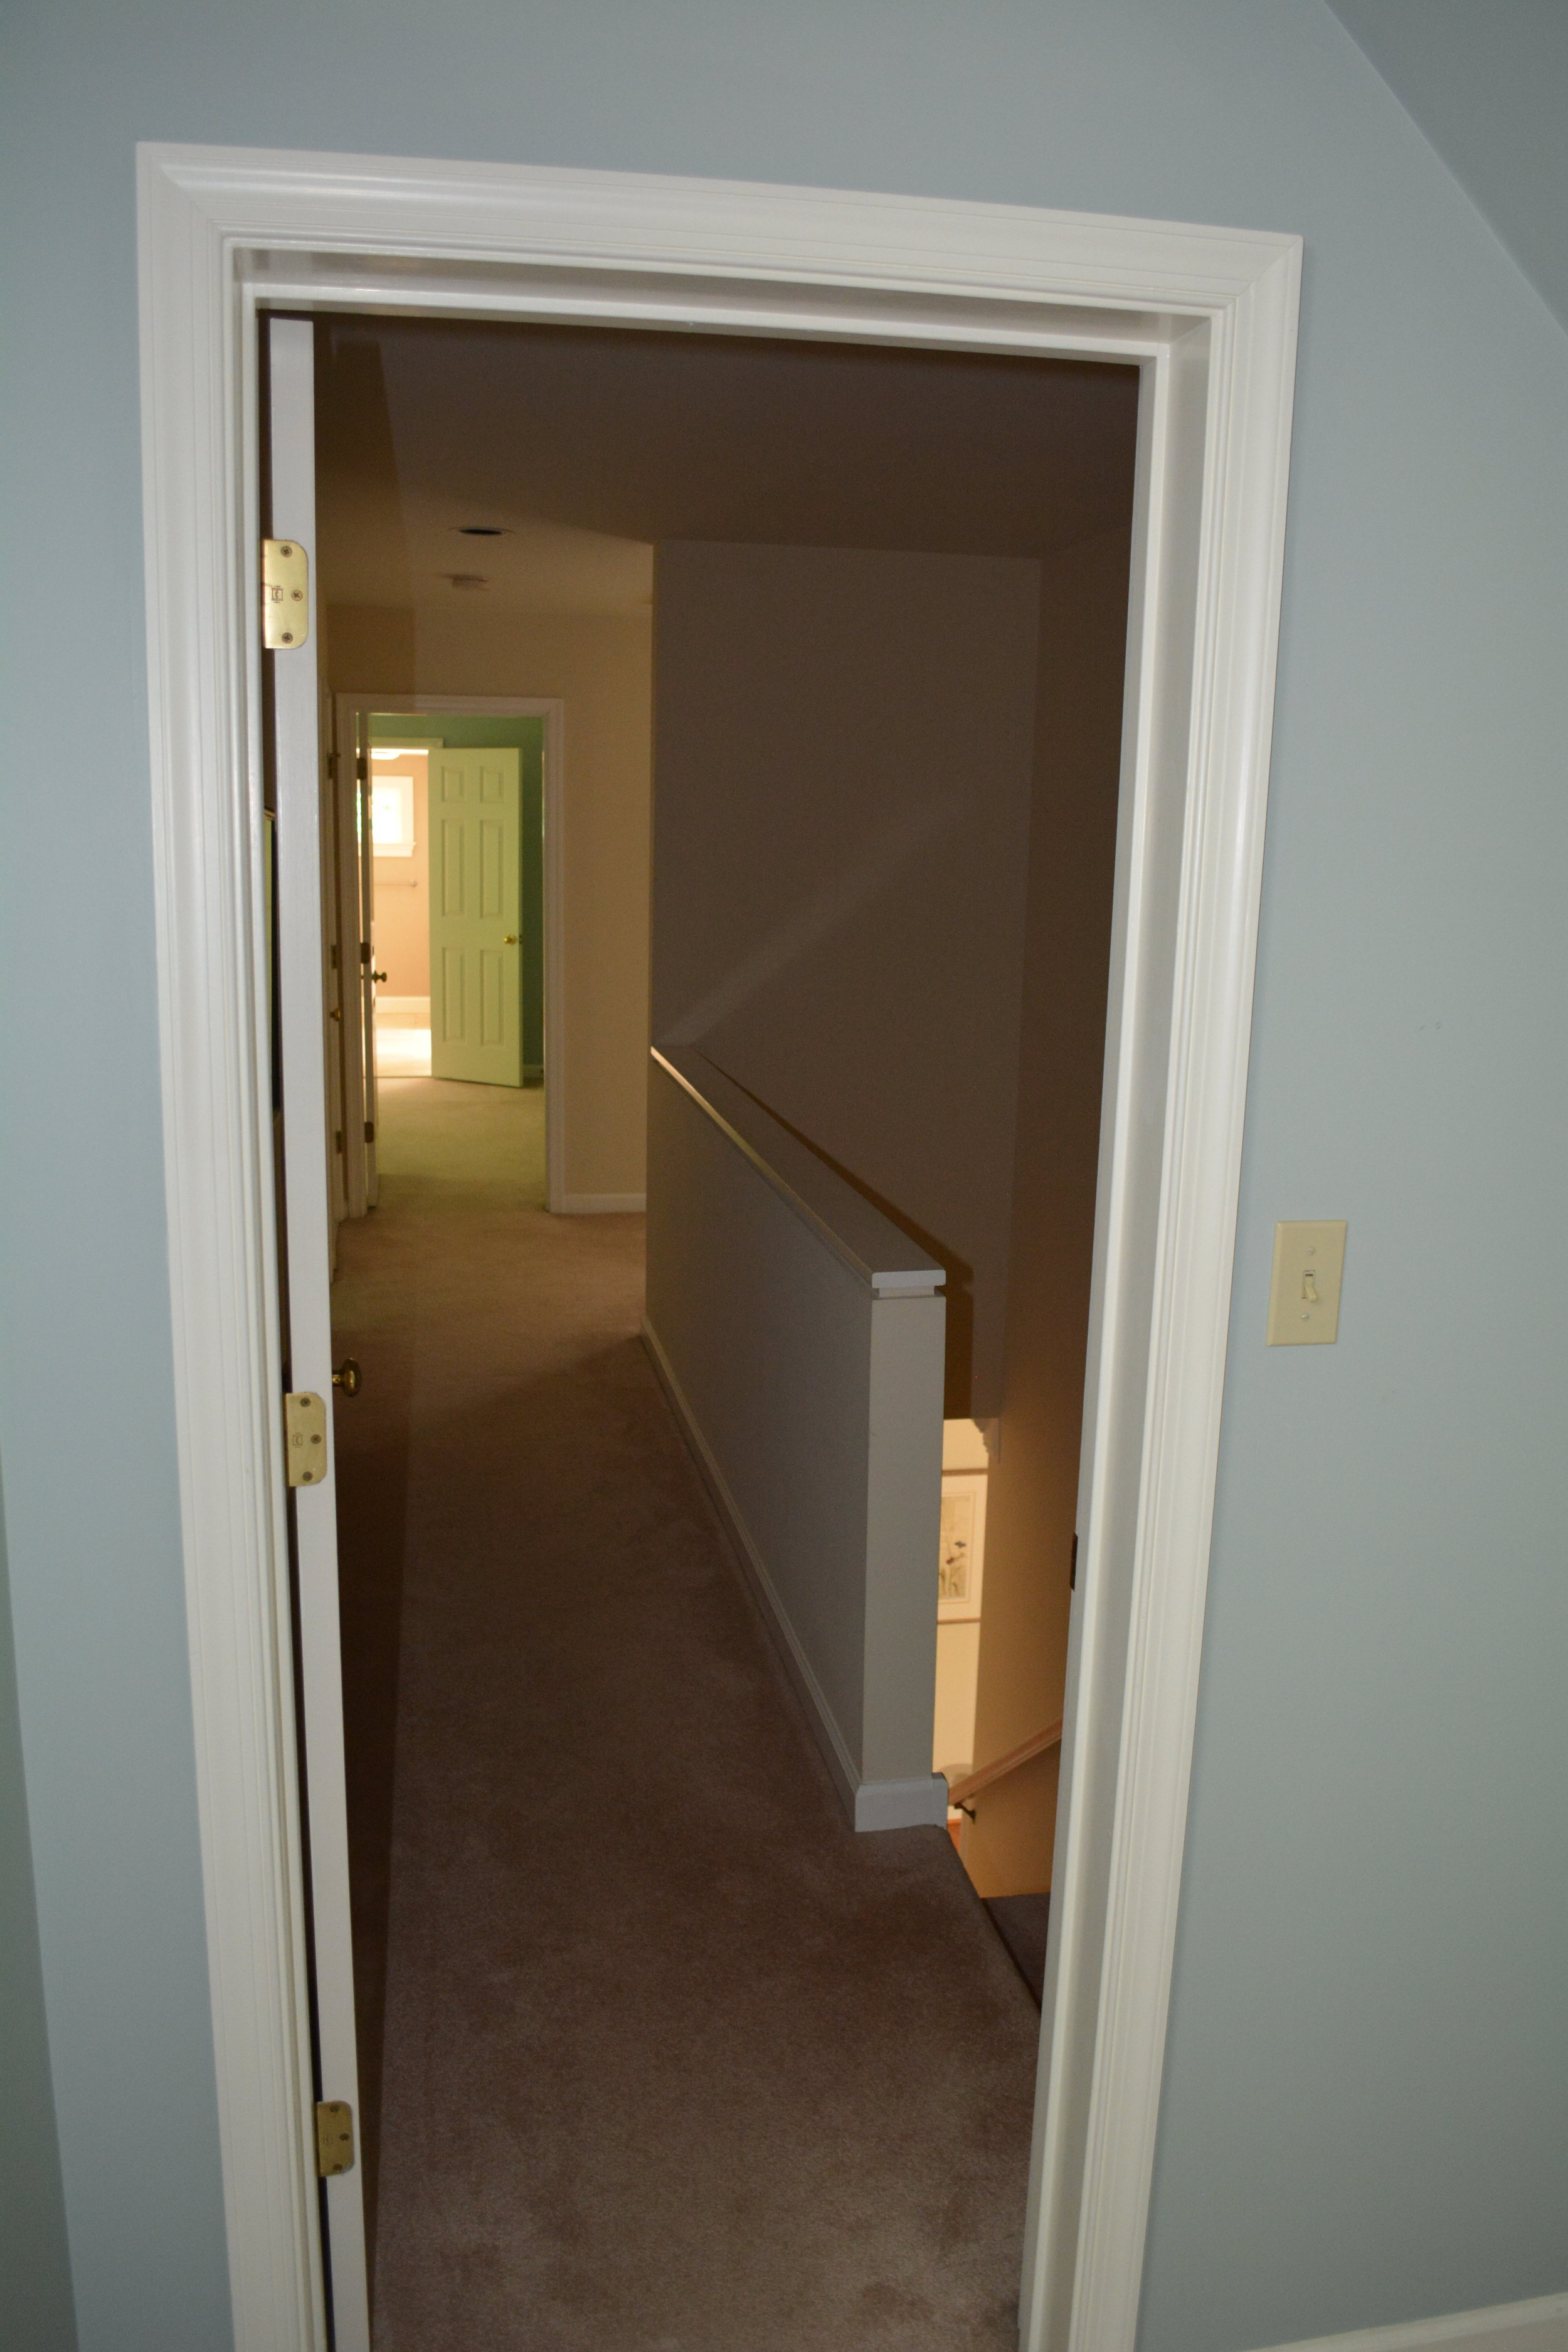 Foyer stairwell, standing in office